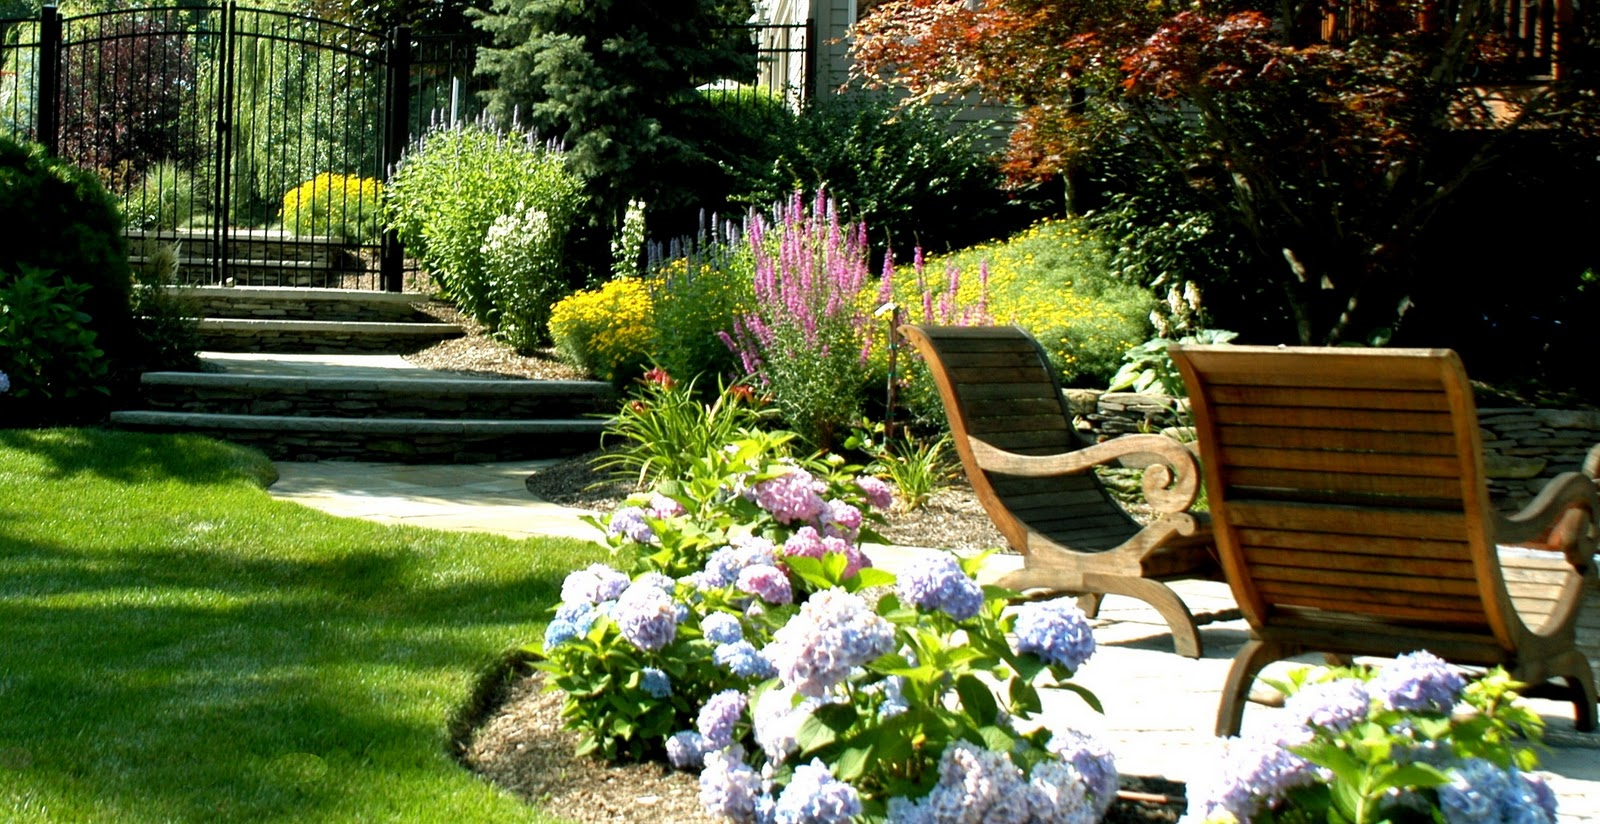 Hightechlandscapes new jersey landscape design for Landscape design pictures